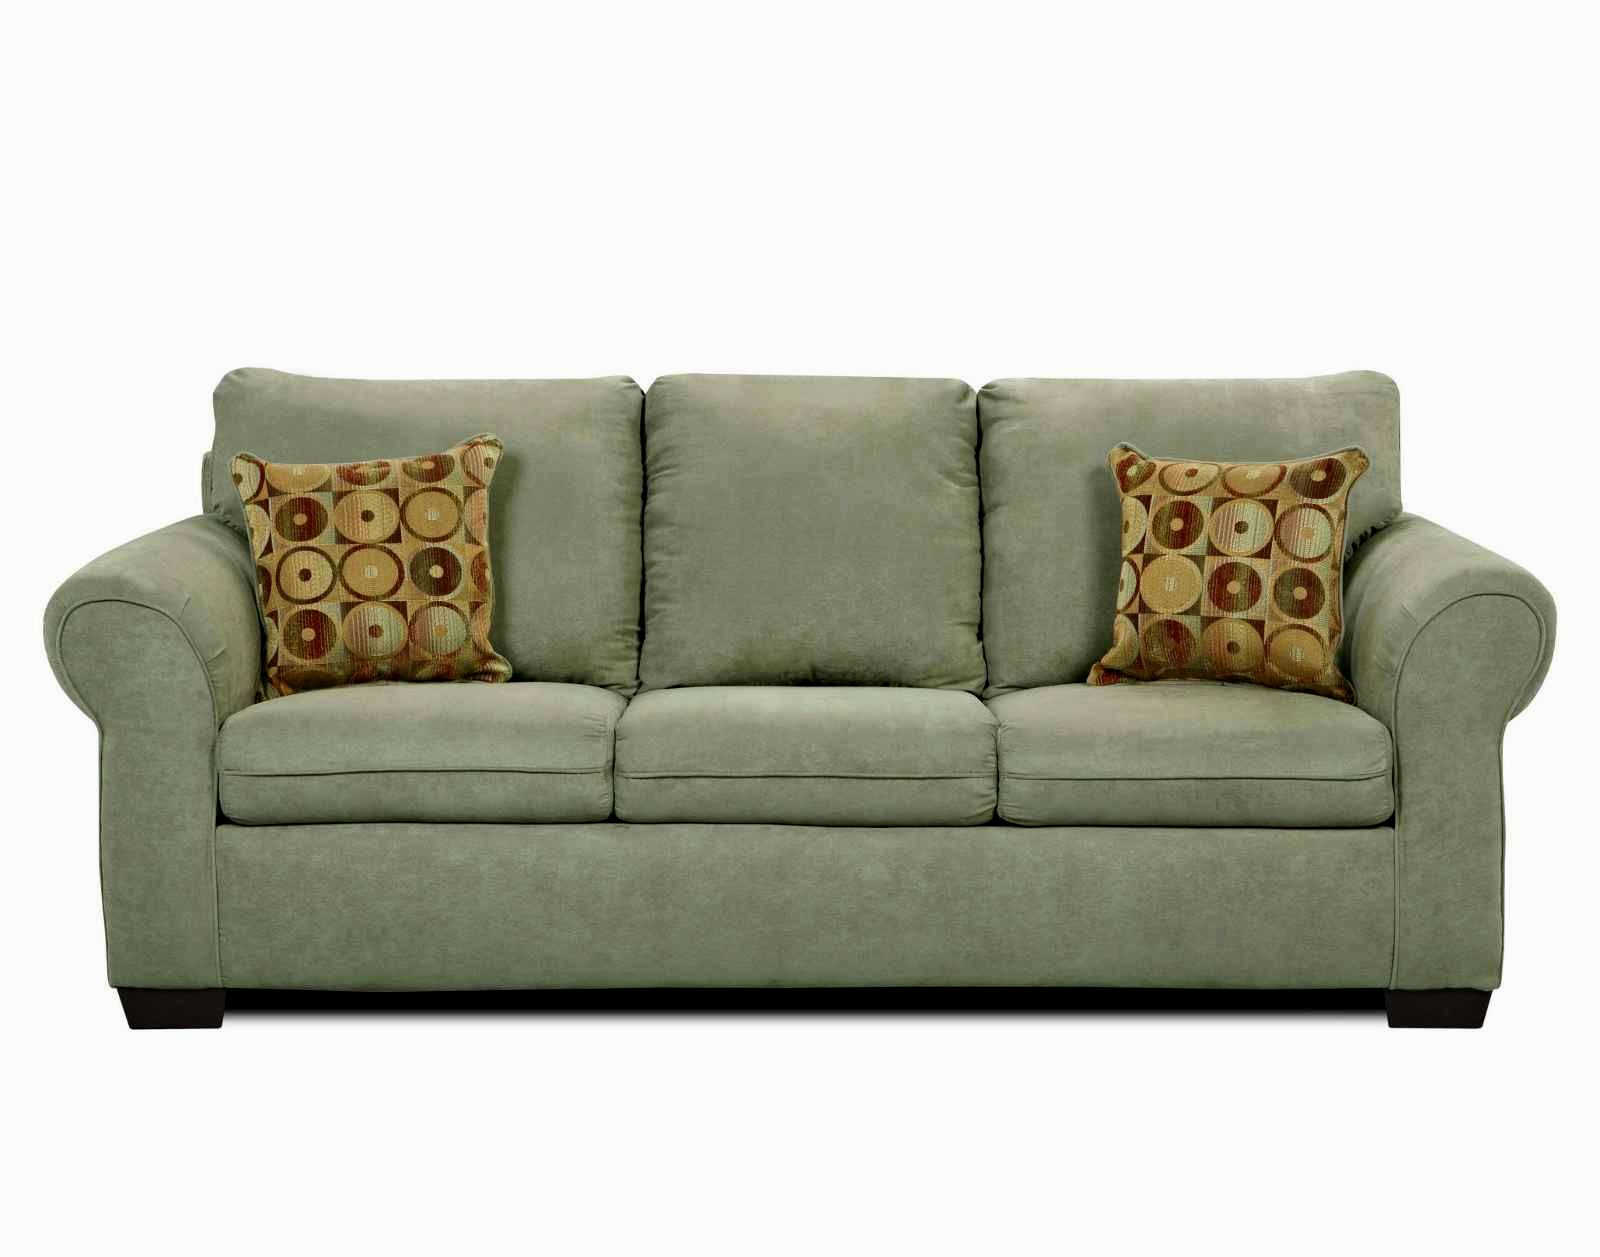 modern sofa sectionals on sale pattern-Terrific sofa Sectionals On Sale Décor